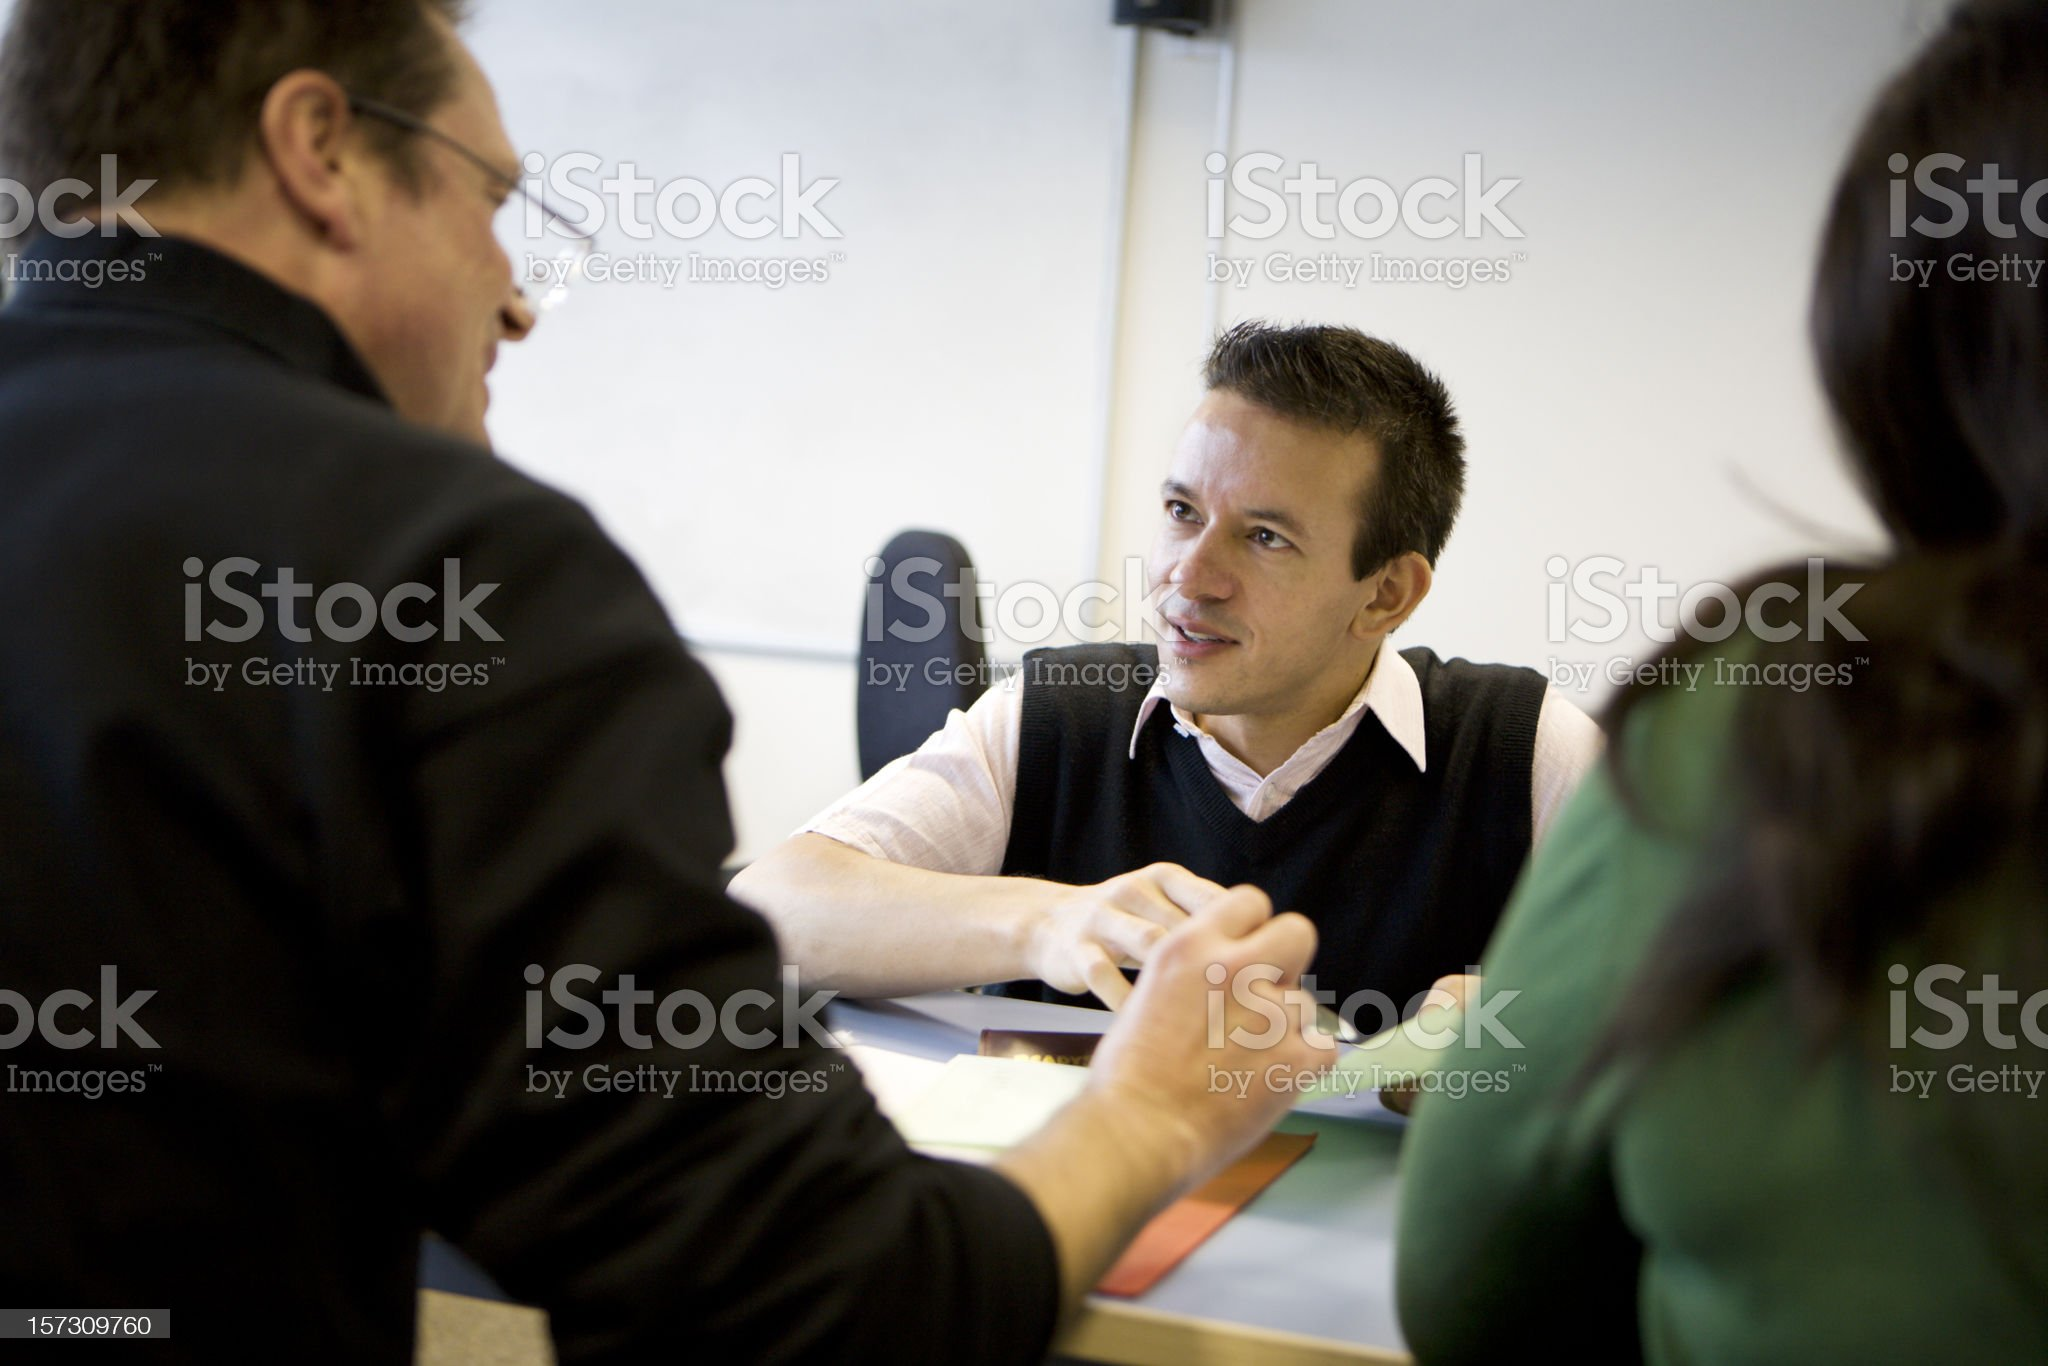 adult education: advice from teacher in an adult education class royalty-free stock photo